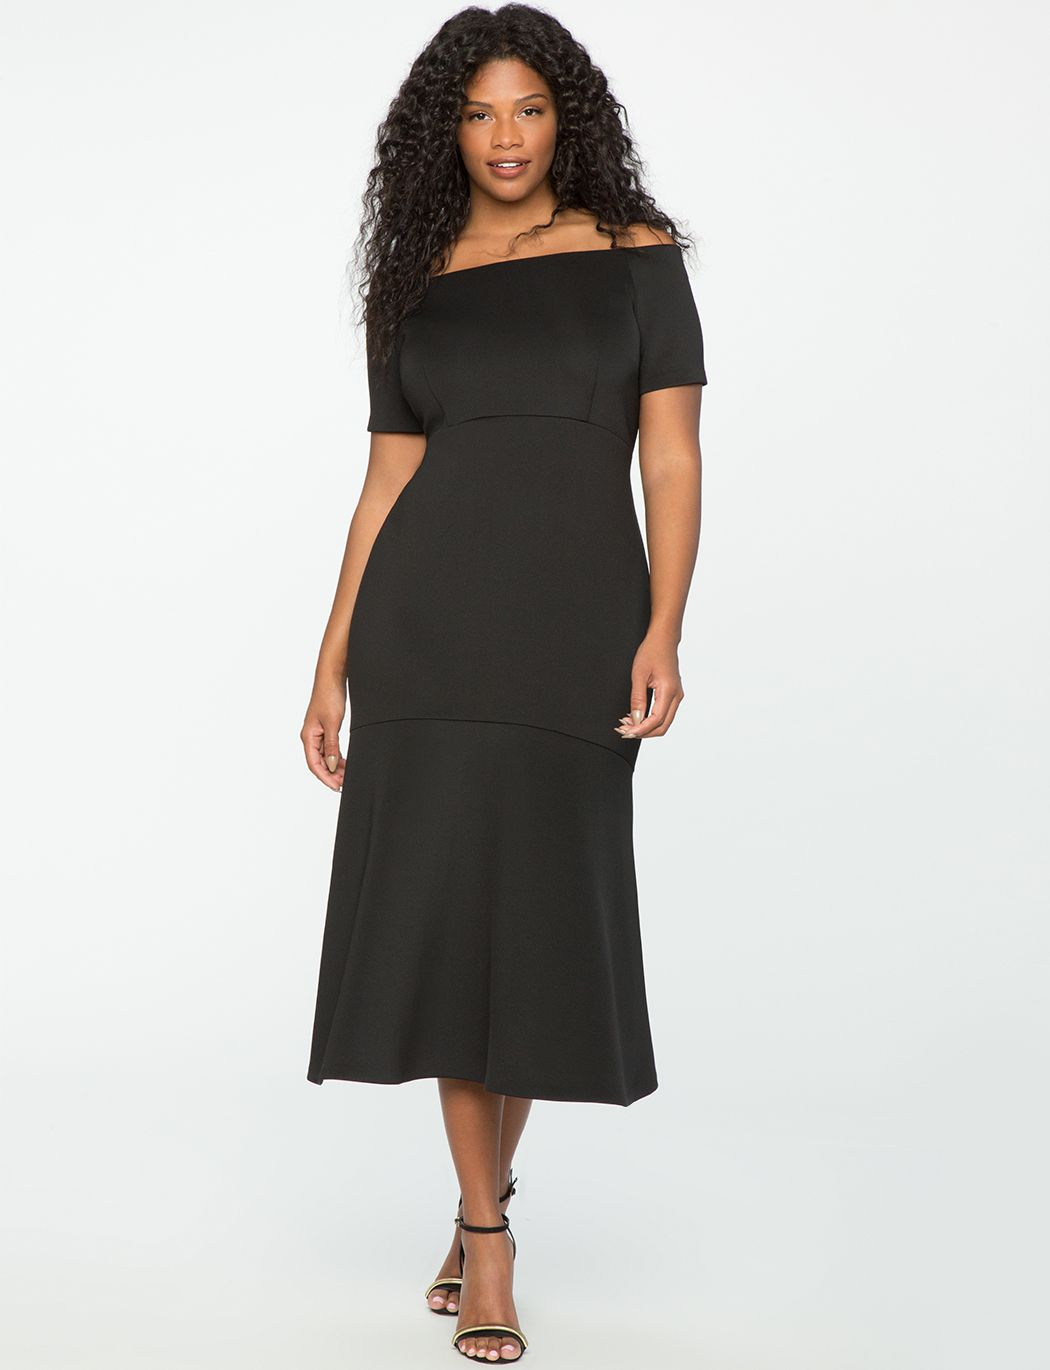 60ccb801cc8 A model in a black off-the-shoulder gown